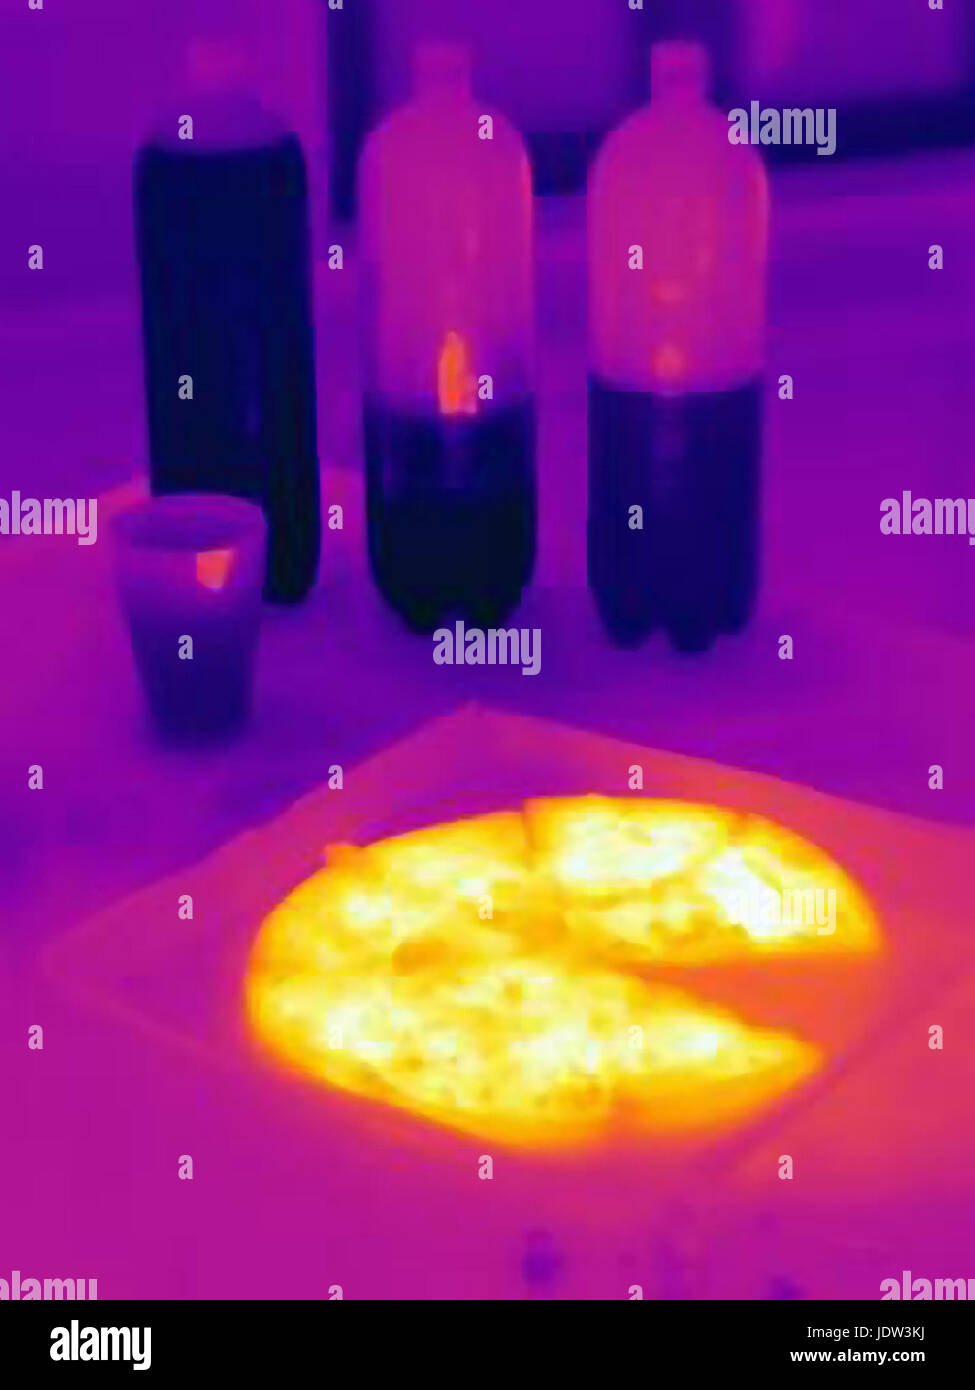 Thermal image of pizza and sodas - Stock Image